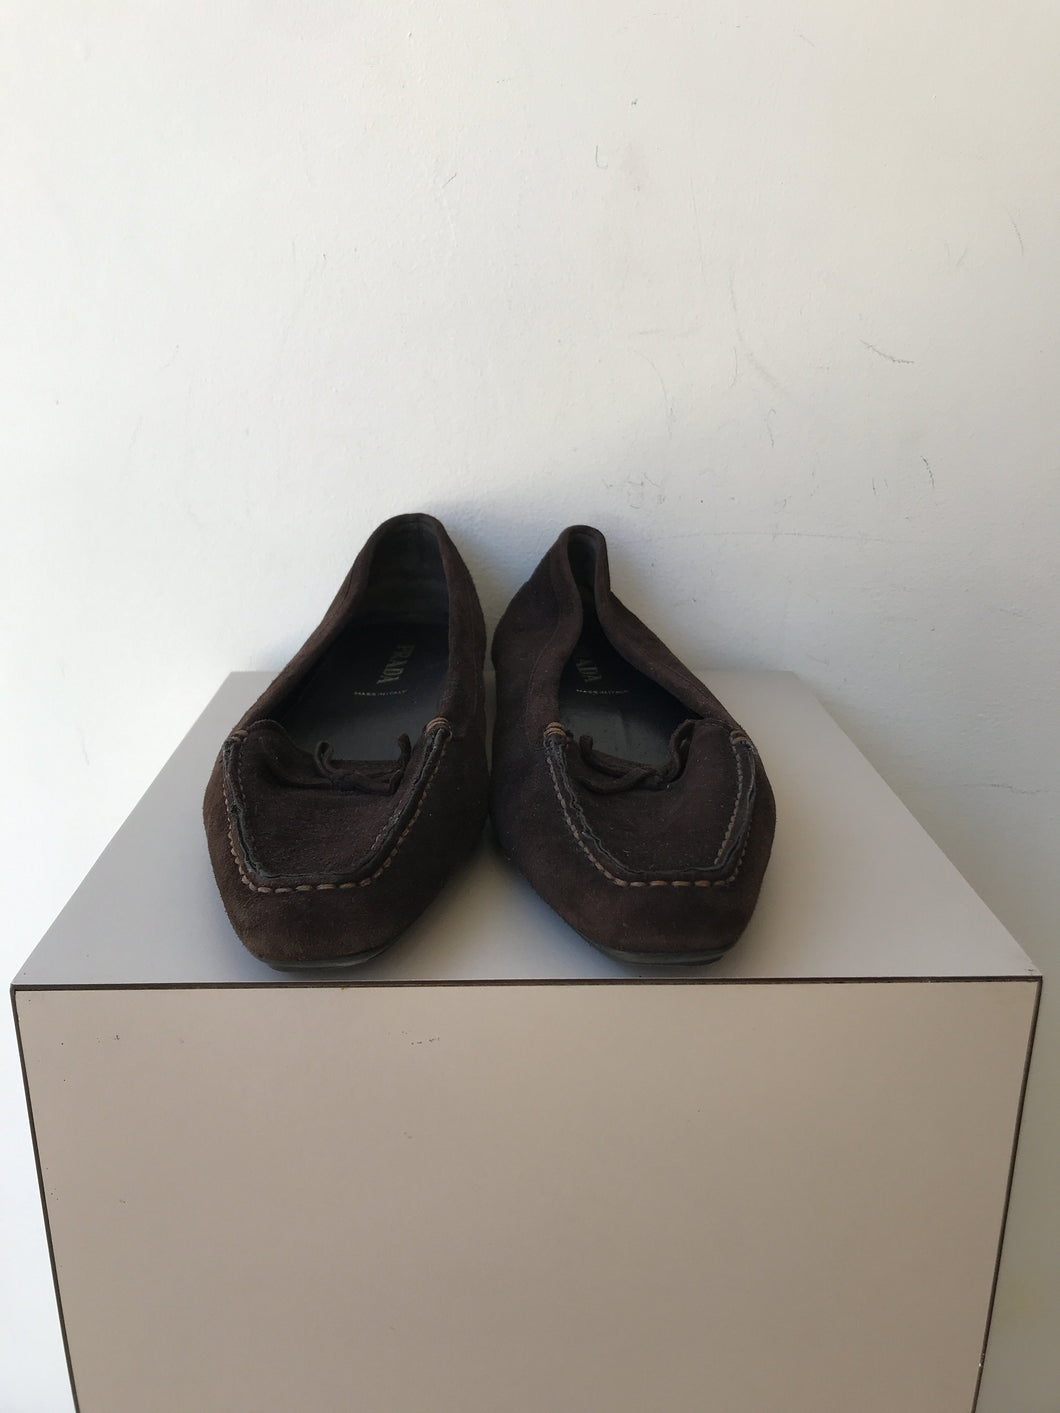 Prada brown suede loafers size 38.5